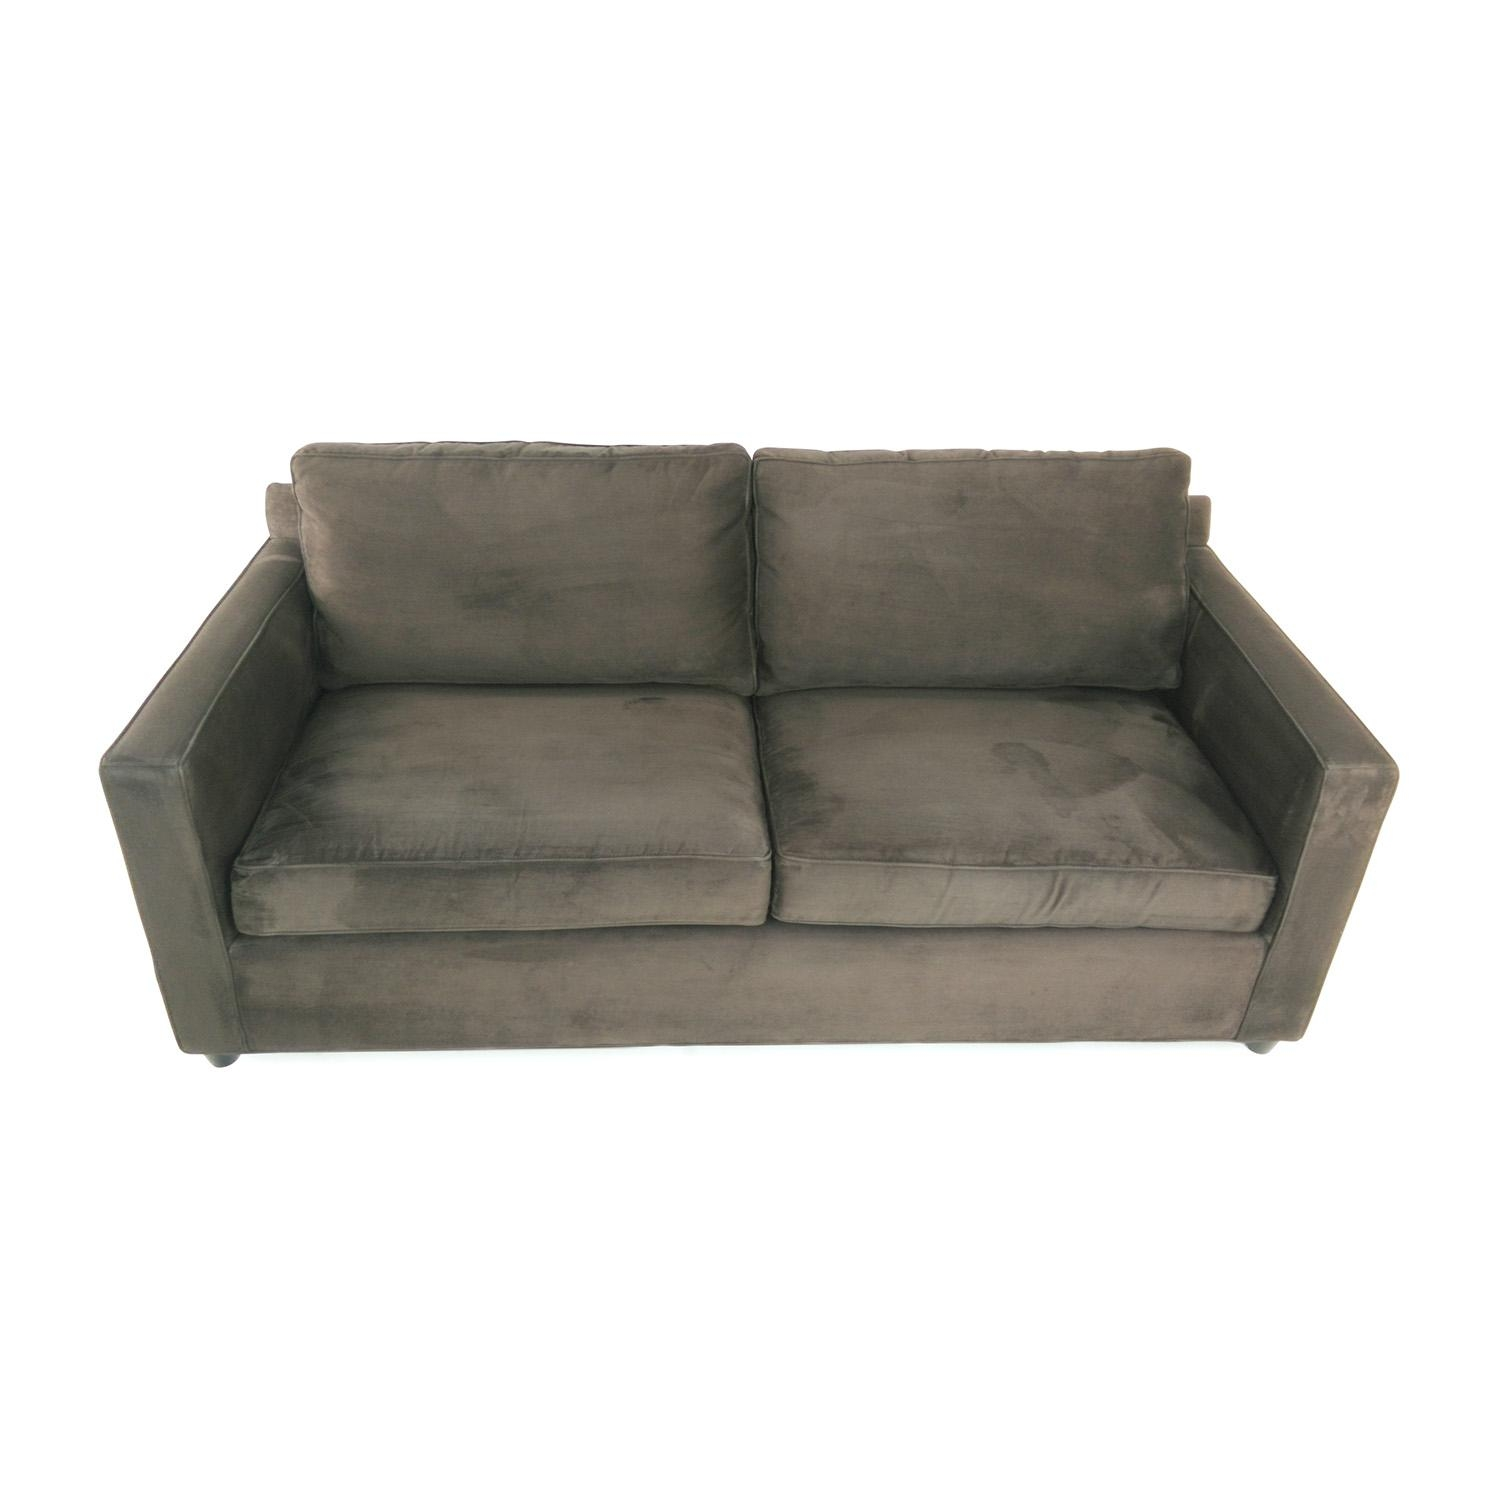 57% Off – Crate And Barrel Crate & Barrel Davis Sofa / Sofas Pertaining To Davis Sofas (Image 1 of 20)